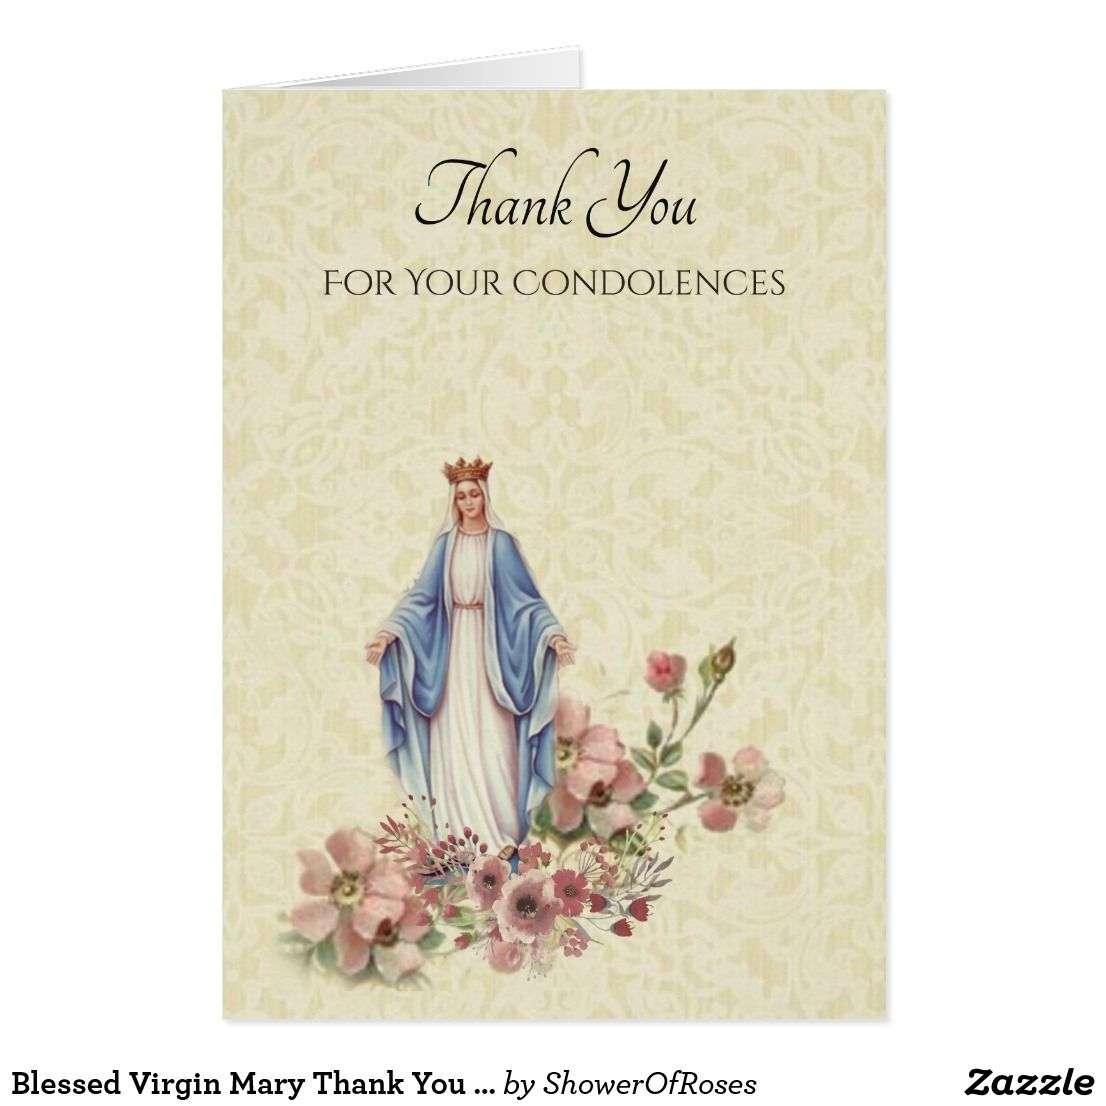 Blessed virgin mary thank you condolences